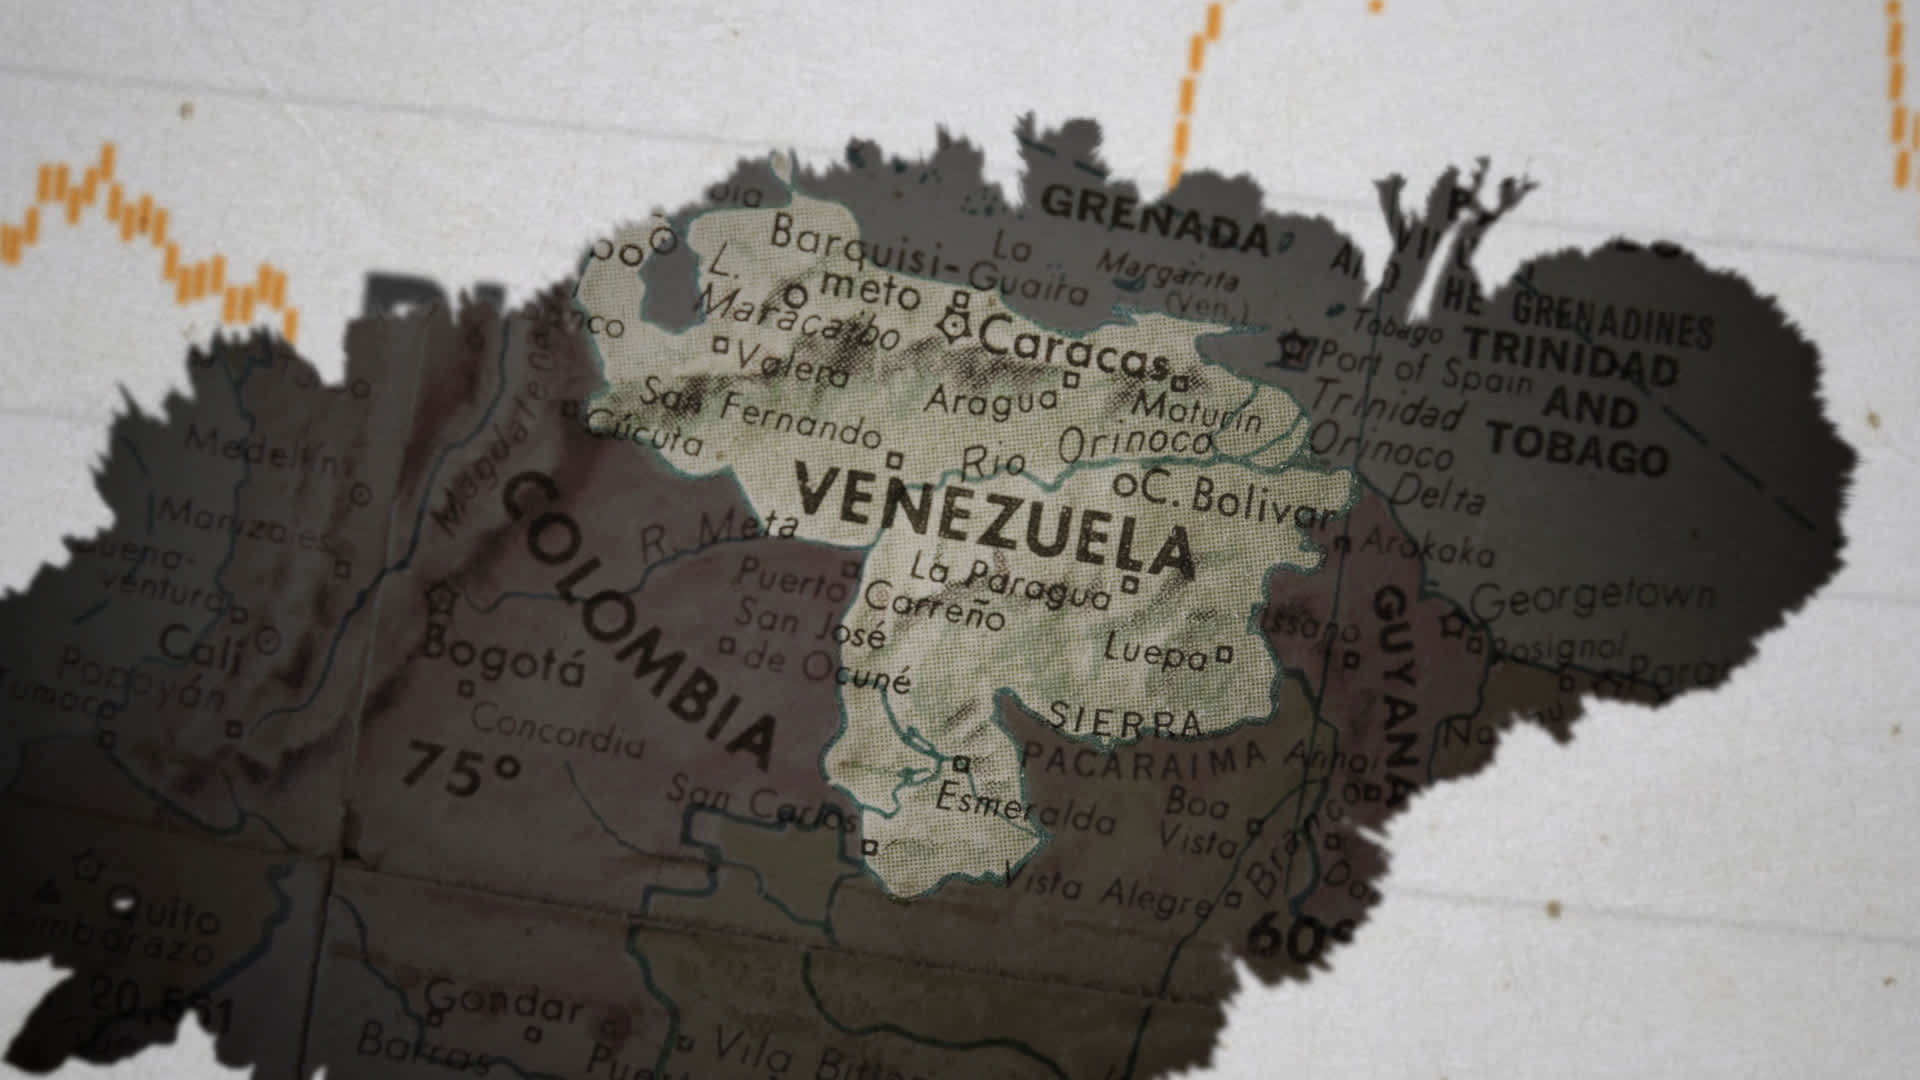 Venezuela is one of the world's most dangerous places to mine bitcoin